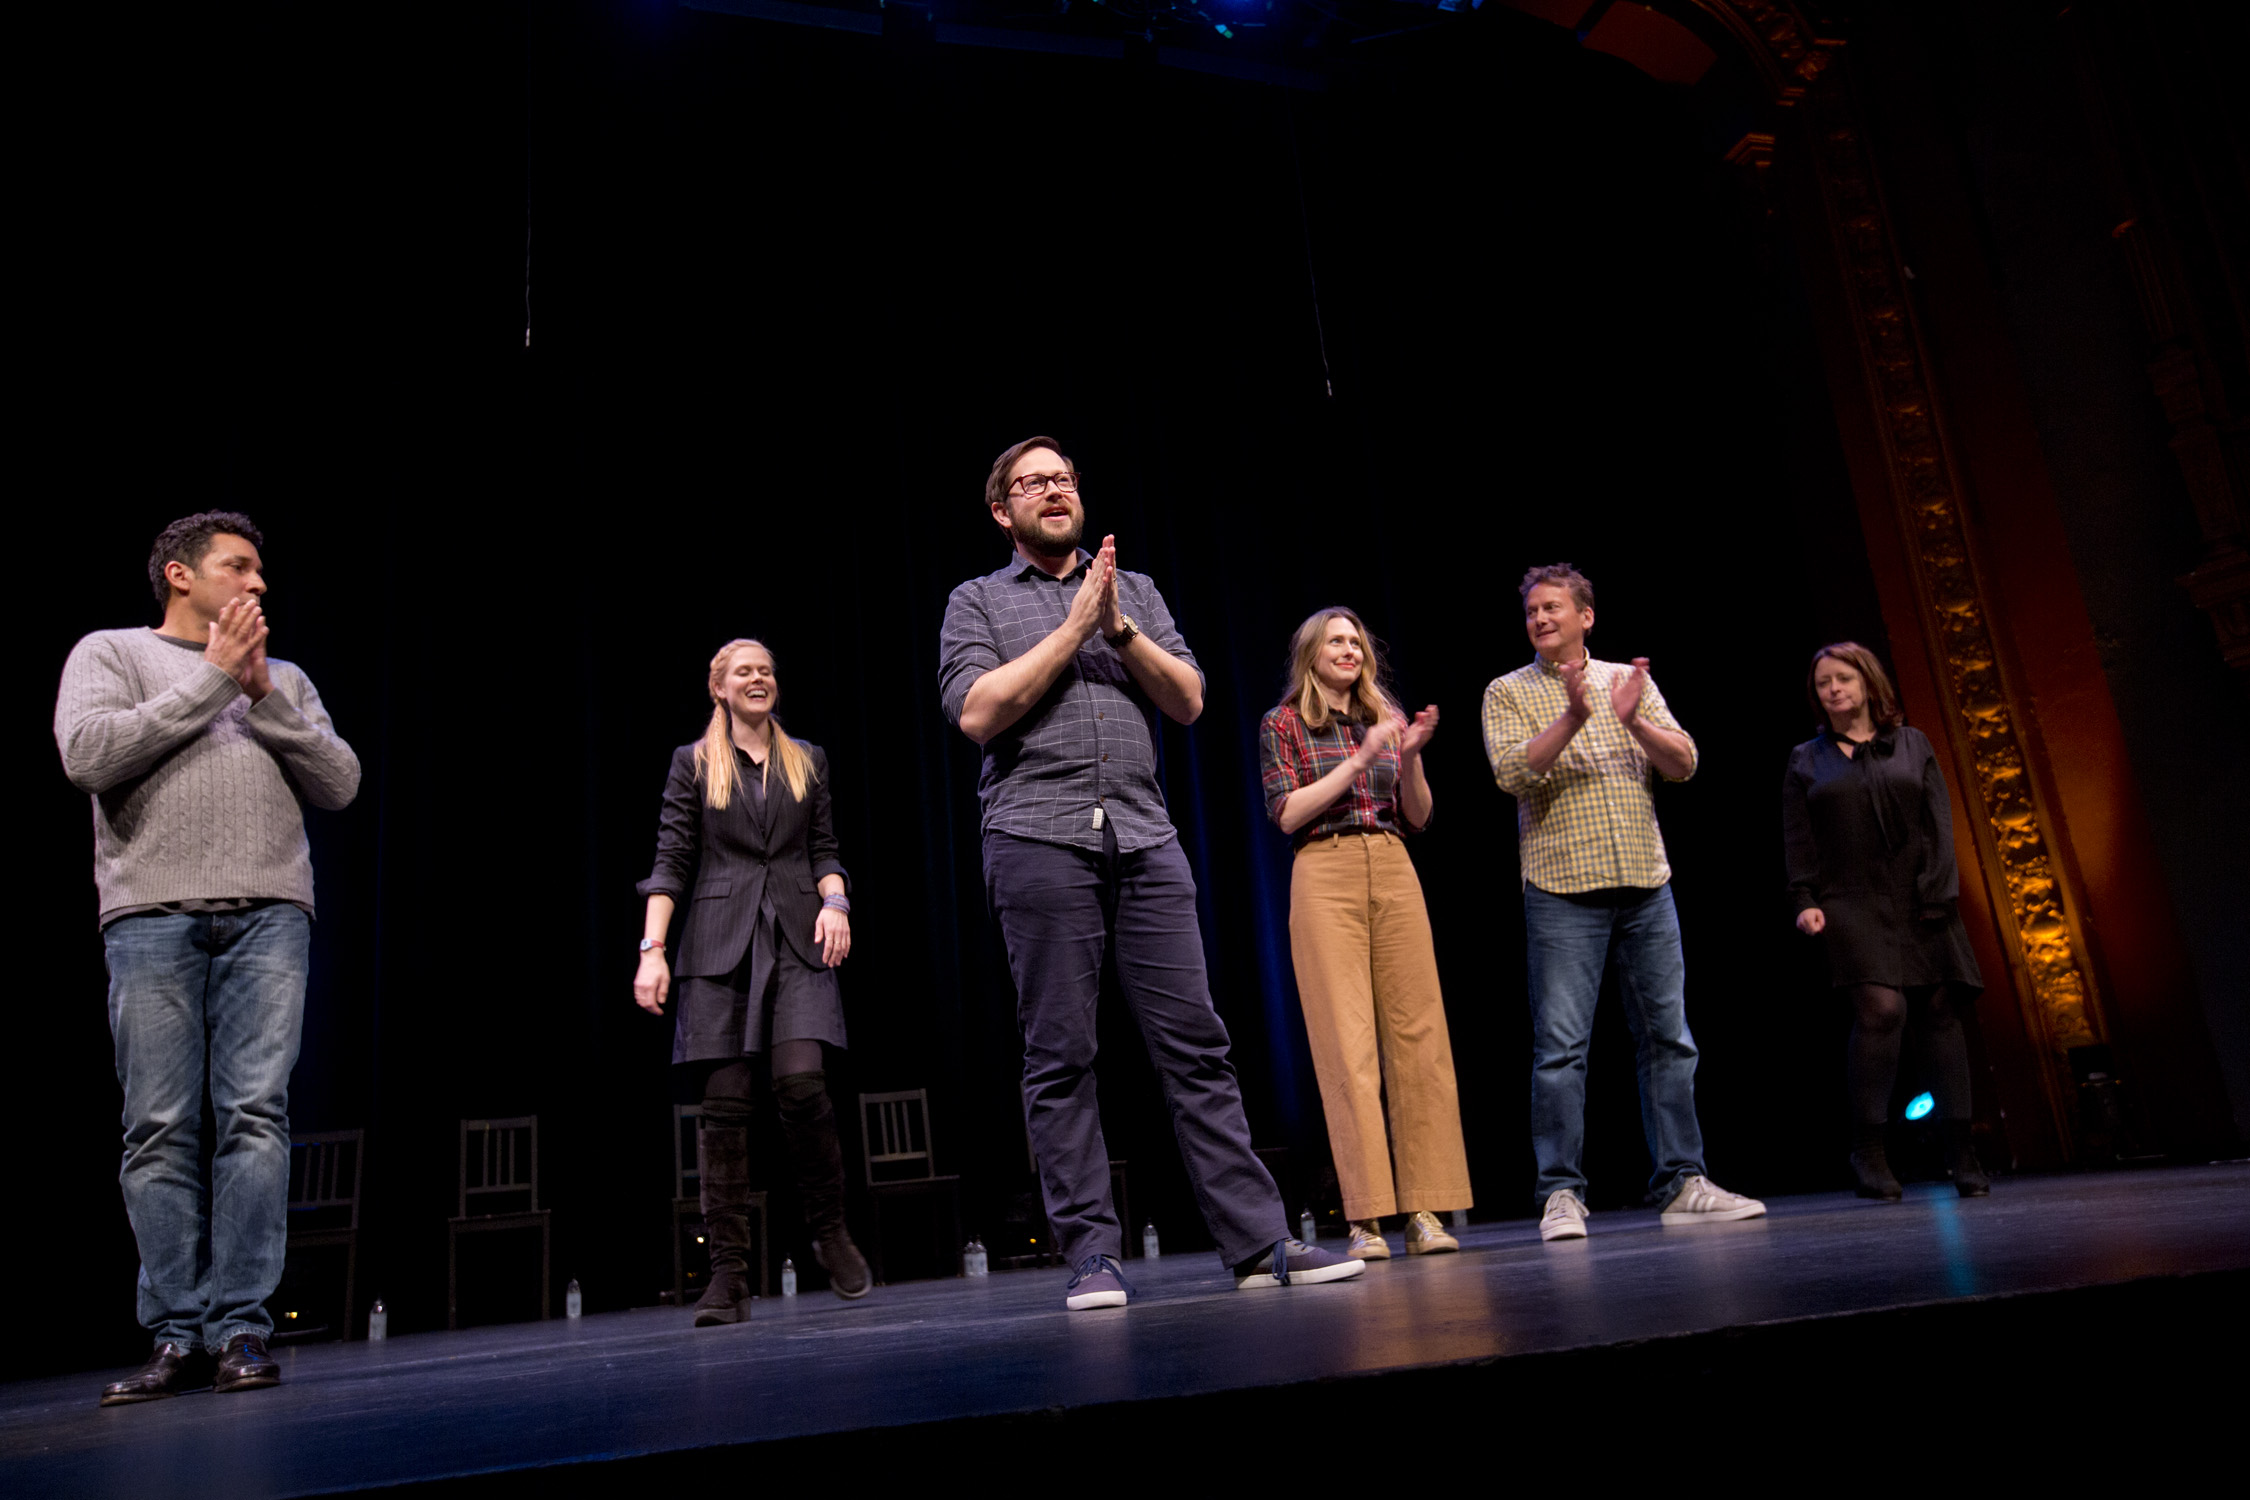 Theme Park Improv 2017 at SF Sketchfest. Photo by Tommy Lau.